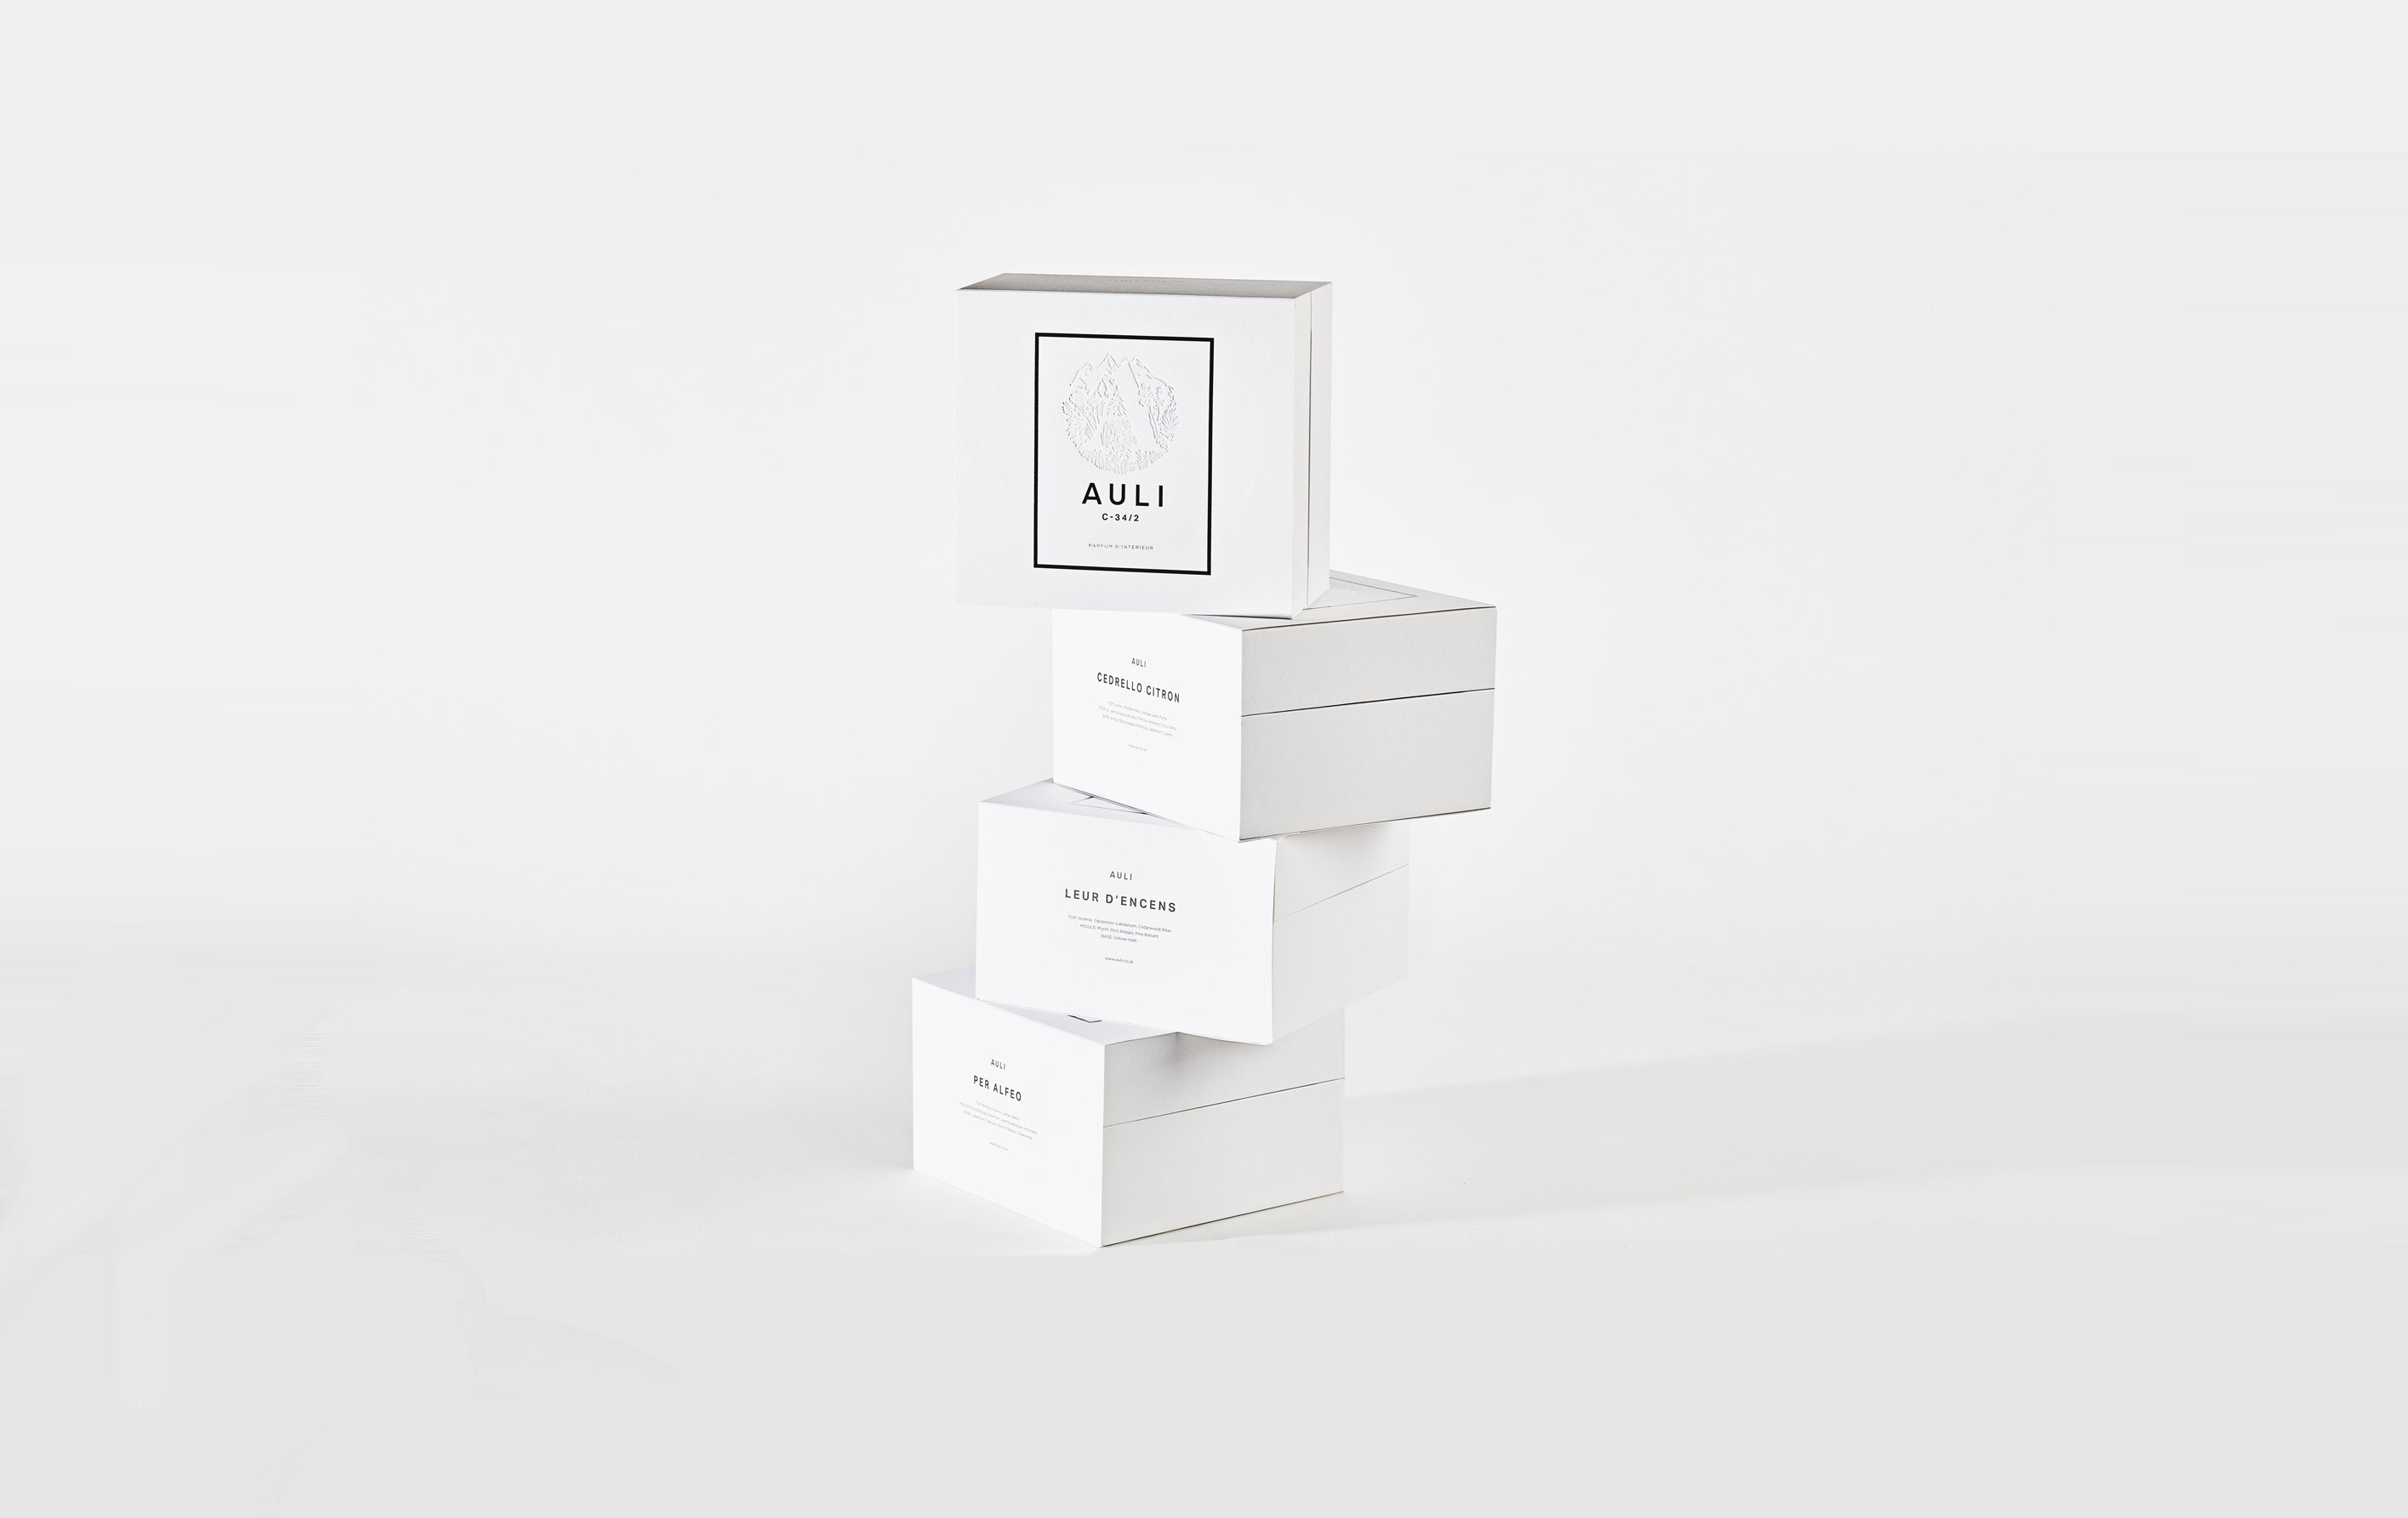 AULI London Products